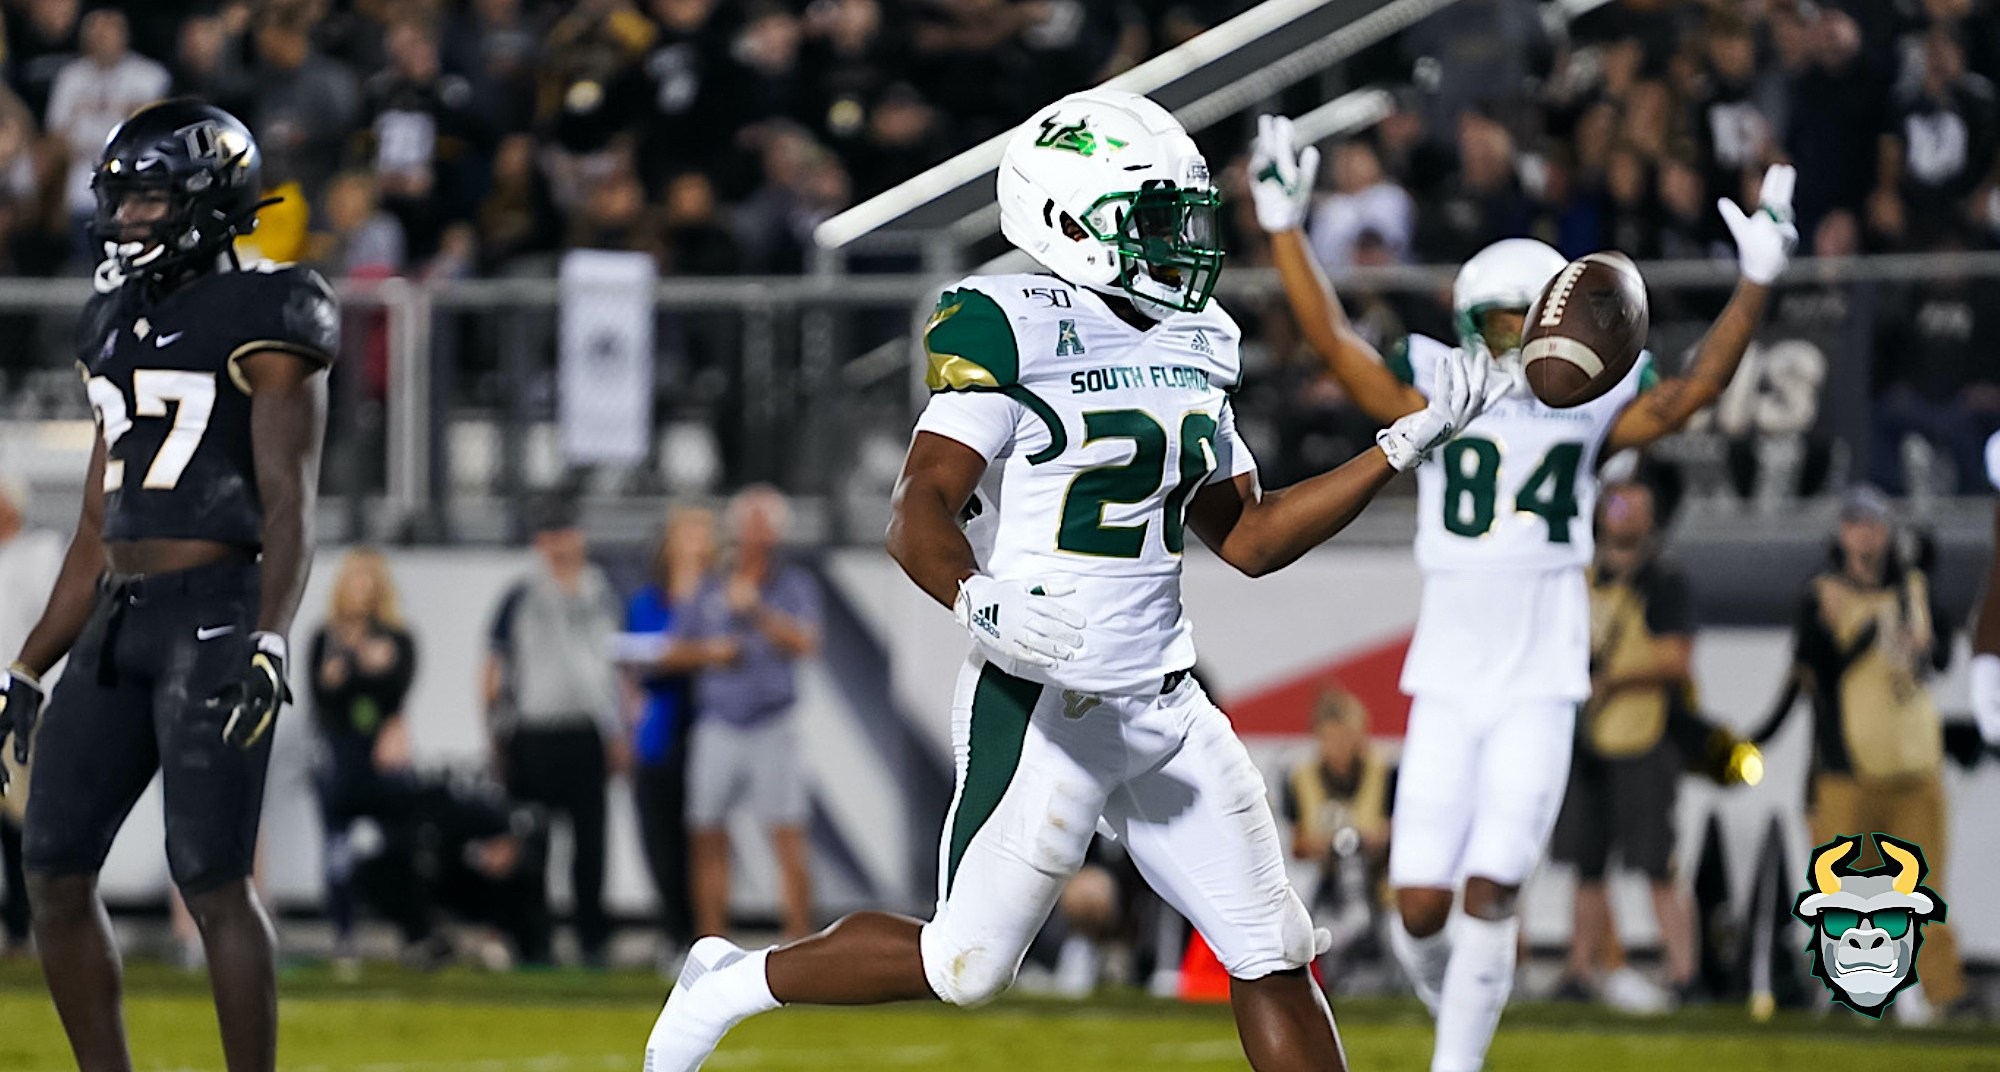 USF RB Johnny Ford's one yard touchdown run vs. UCF 2019 at Spectrum Stadium in Orlando, FL on November 29, 2019 by David Gold | SoFloBulls.com